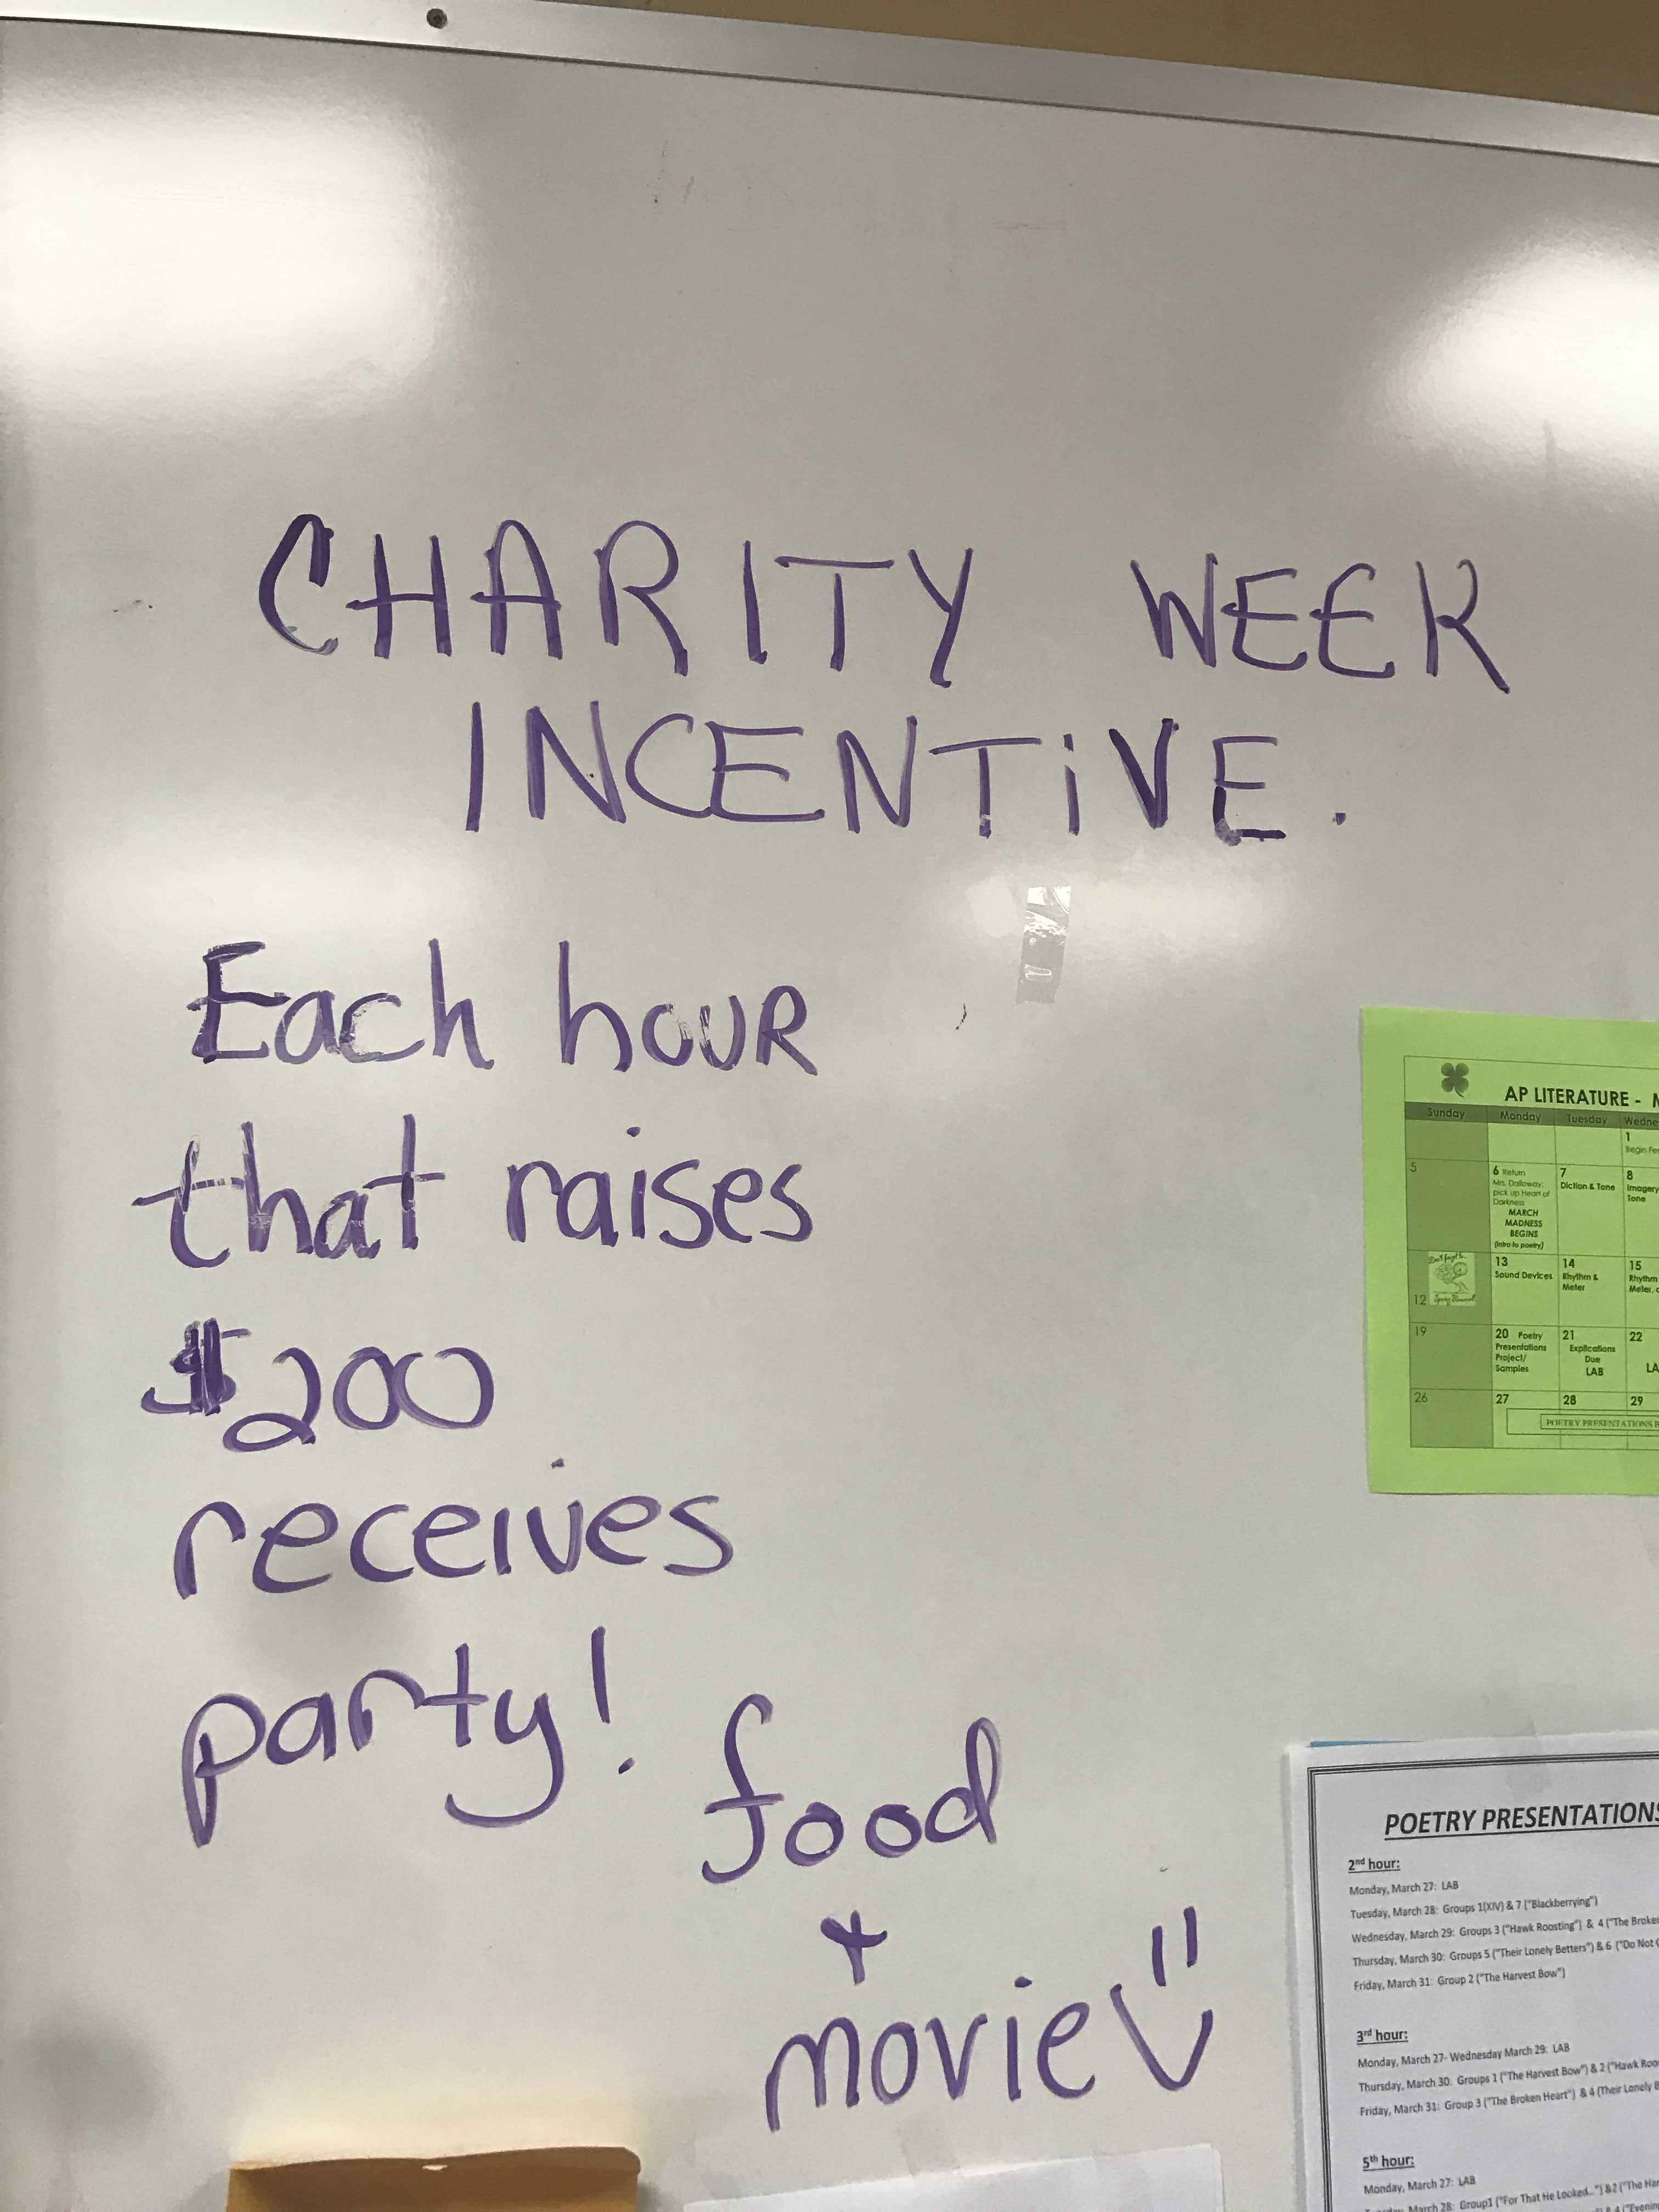 Teacher around the school offer students incentives during Charity Week, but when do these incentives go too far?